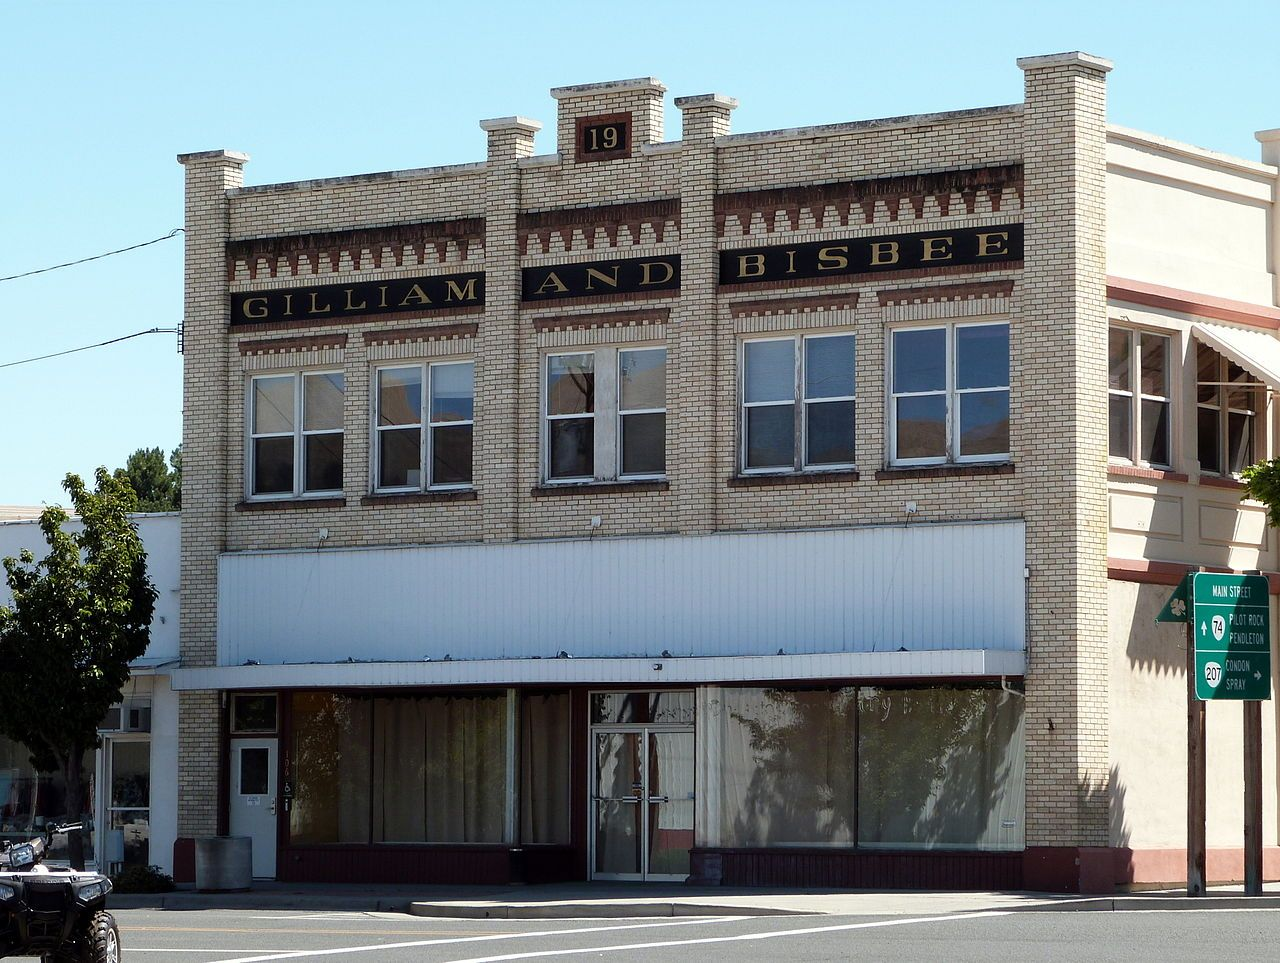 Gilliam and Bisbee Building in Morrow County, Oregon.